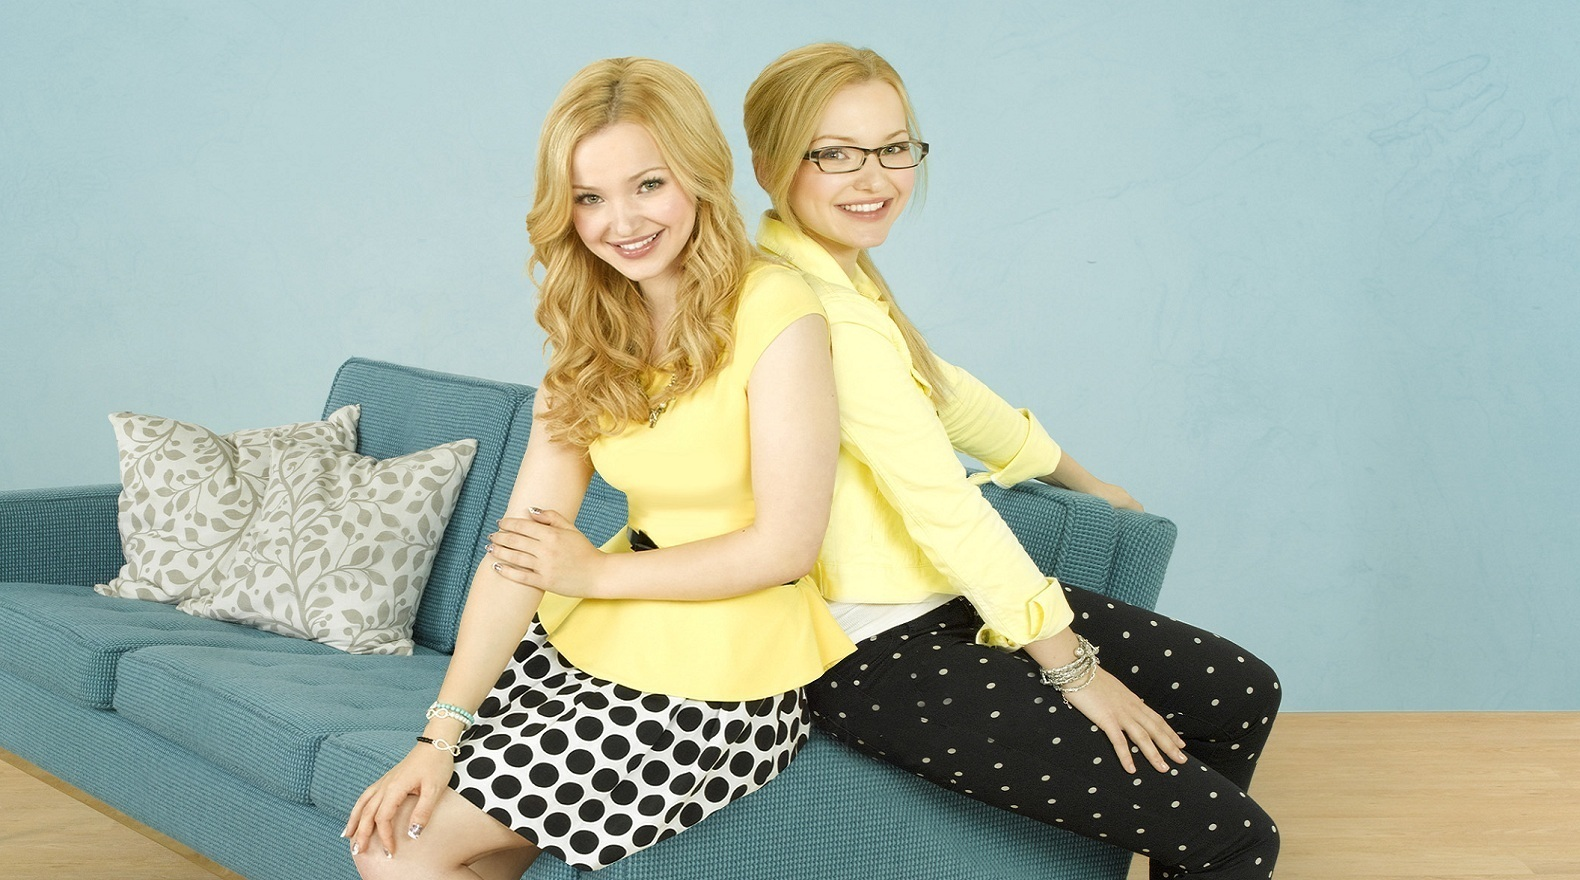 Disney channel coloring pages liv and maddie - Disney Channel Coloring Pages Liv And Maddie 14